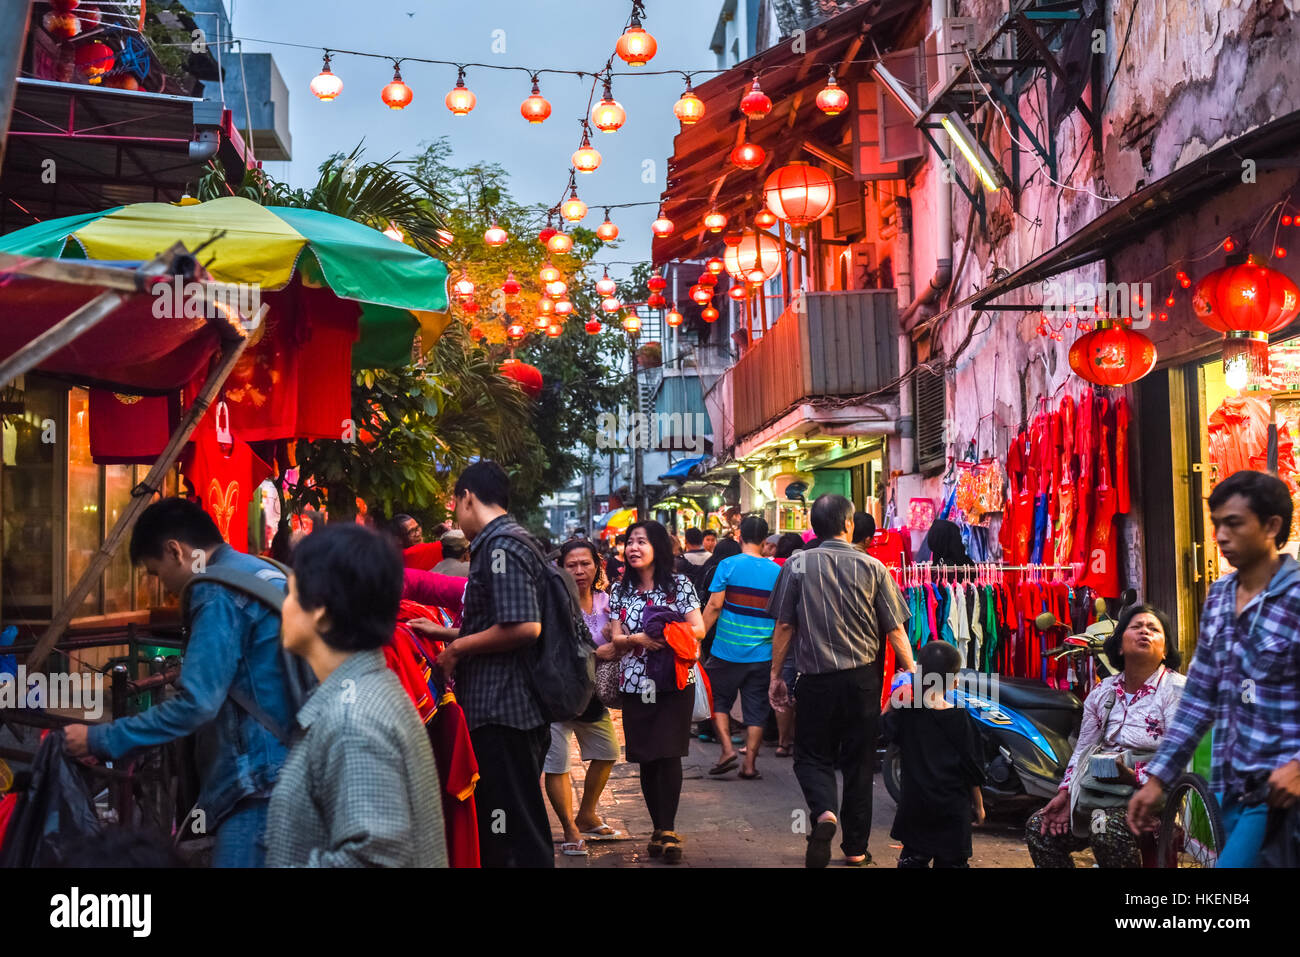 Crowd in a narrow street decorated with Chinese lanterns in Jakarta Chinatown. © Reynold Sumayku Stock Photo